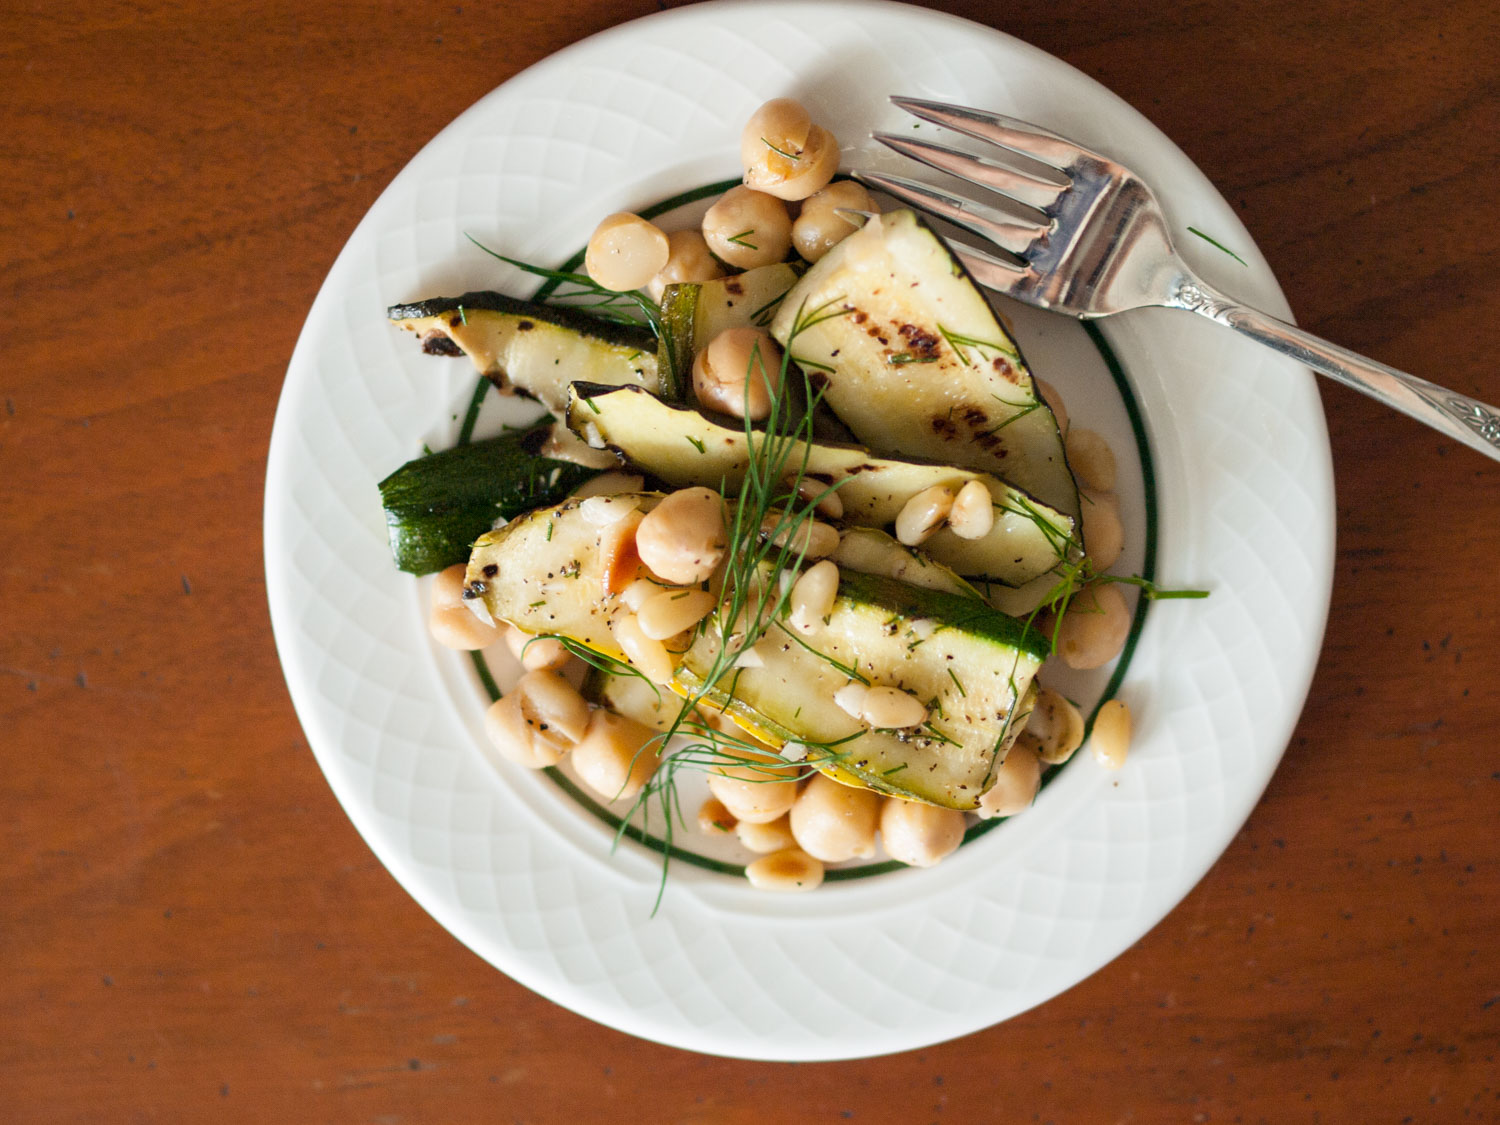 grilled zucchini with chickpeas and dill